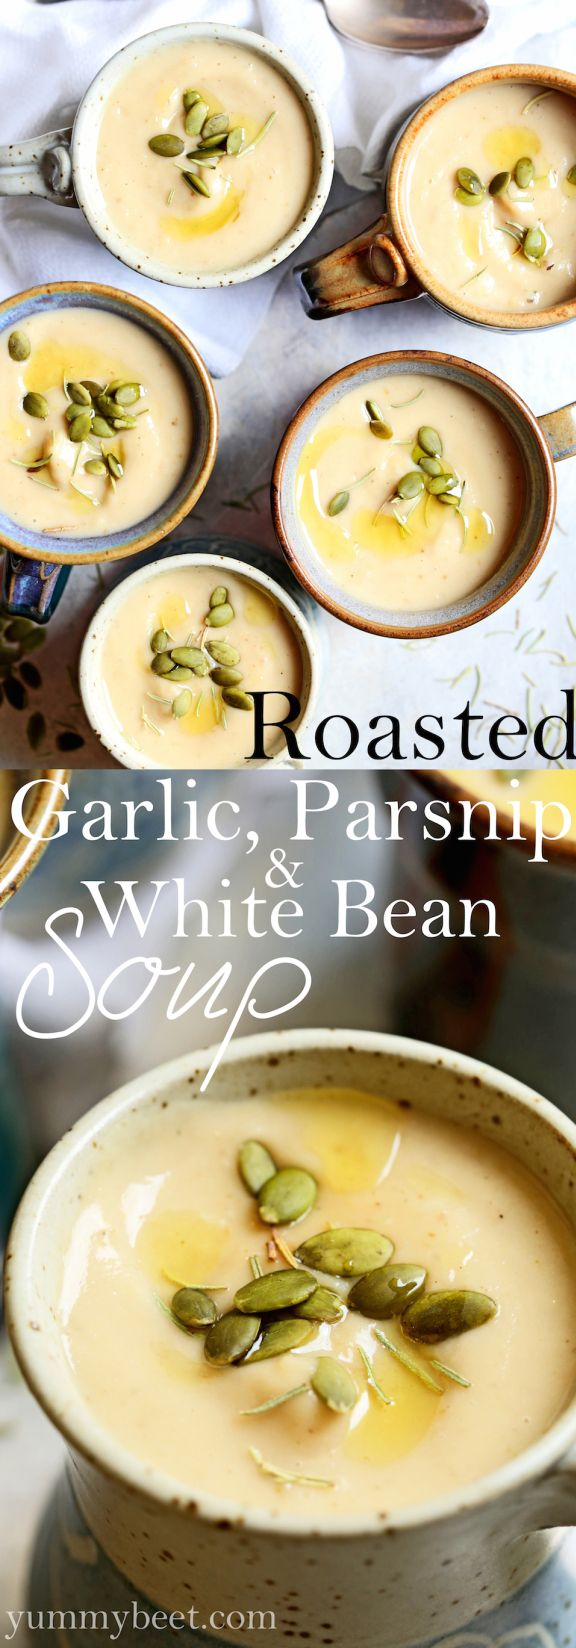 Roasted Garlic, Parsnip & White Bean Soup ***Tried it and didn't care for it. Too sweet. Next time would substitute for potato or cauliflower and do a shaved crisp parsnip bits on top as a but if final flavor, not the main event.